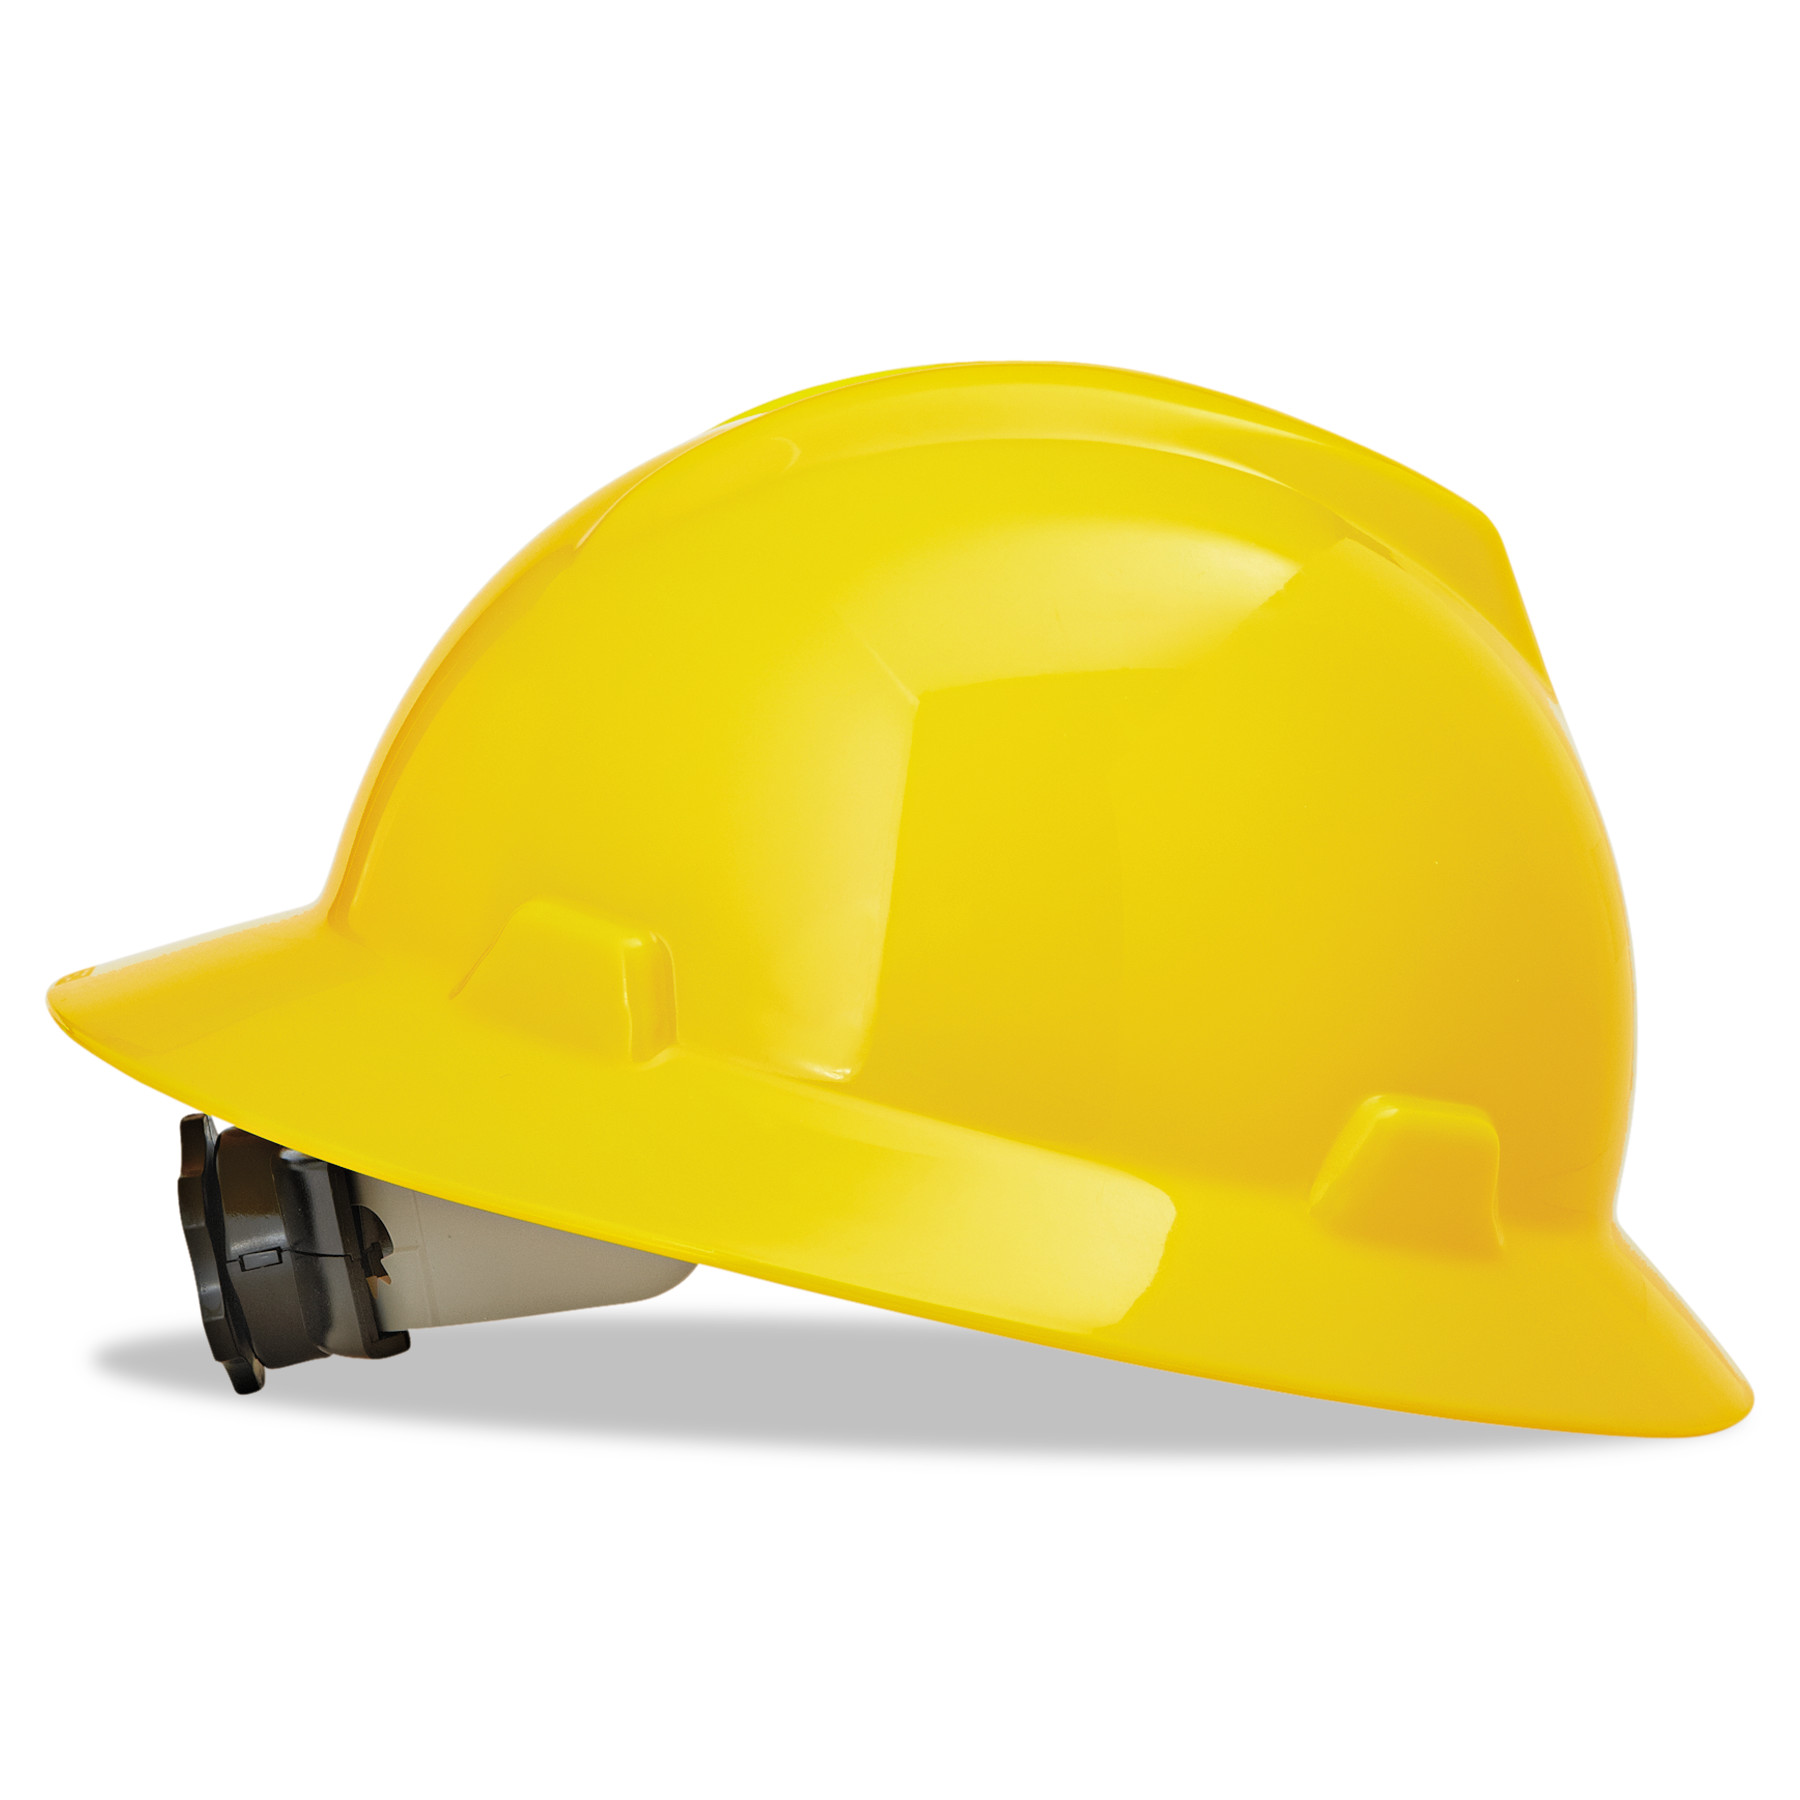 MSA V-Gard Full-Brim Hard Hats, Ratchet Suspension, Size 6 1 2 8, Yellow by SAFETY WORKS